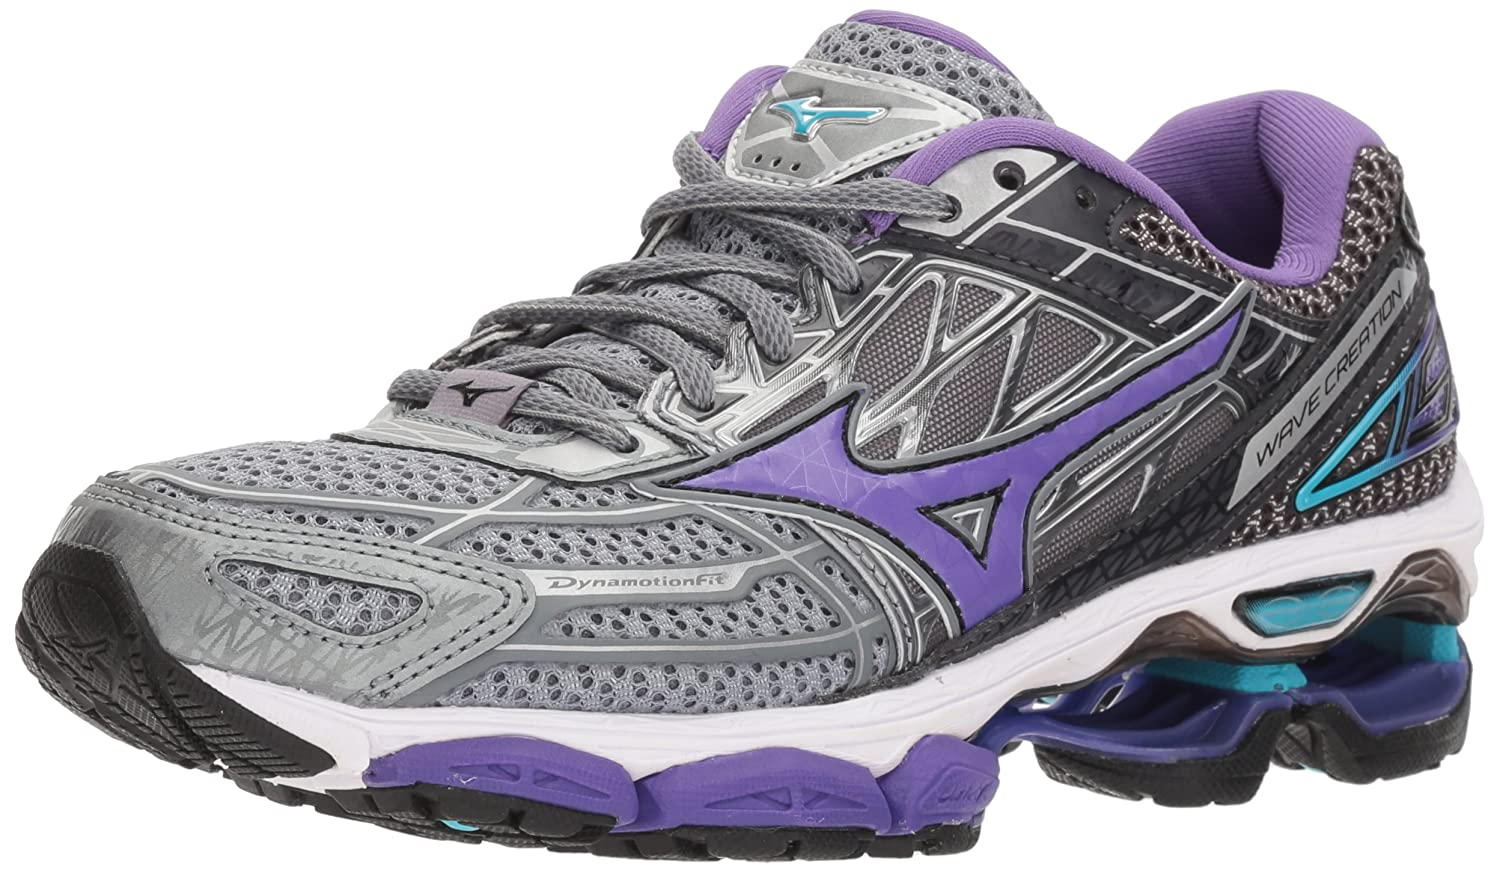 Mizuno Running Women's Wave Creation 19 Shoes B0713WN4WD 10 B(M) US|Monument/Passion Flower